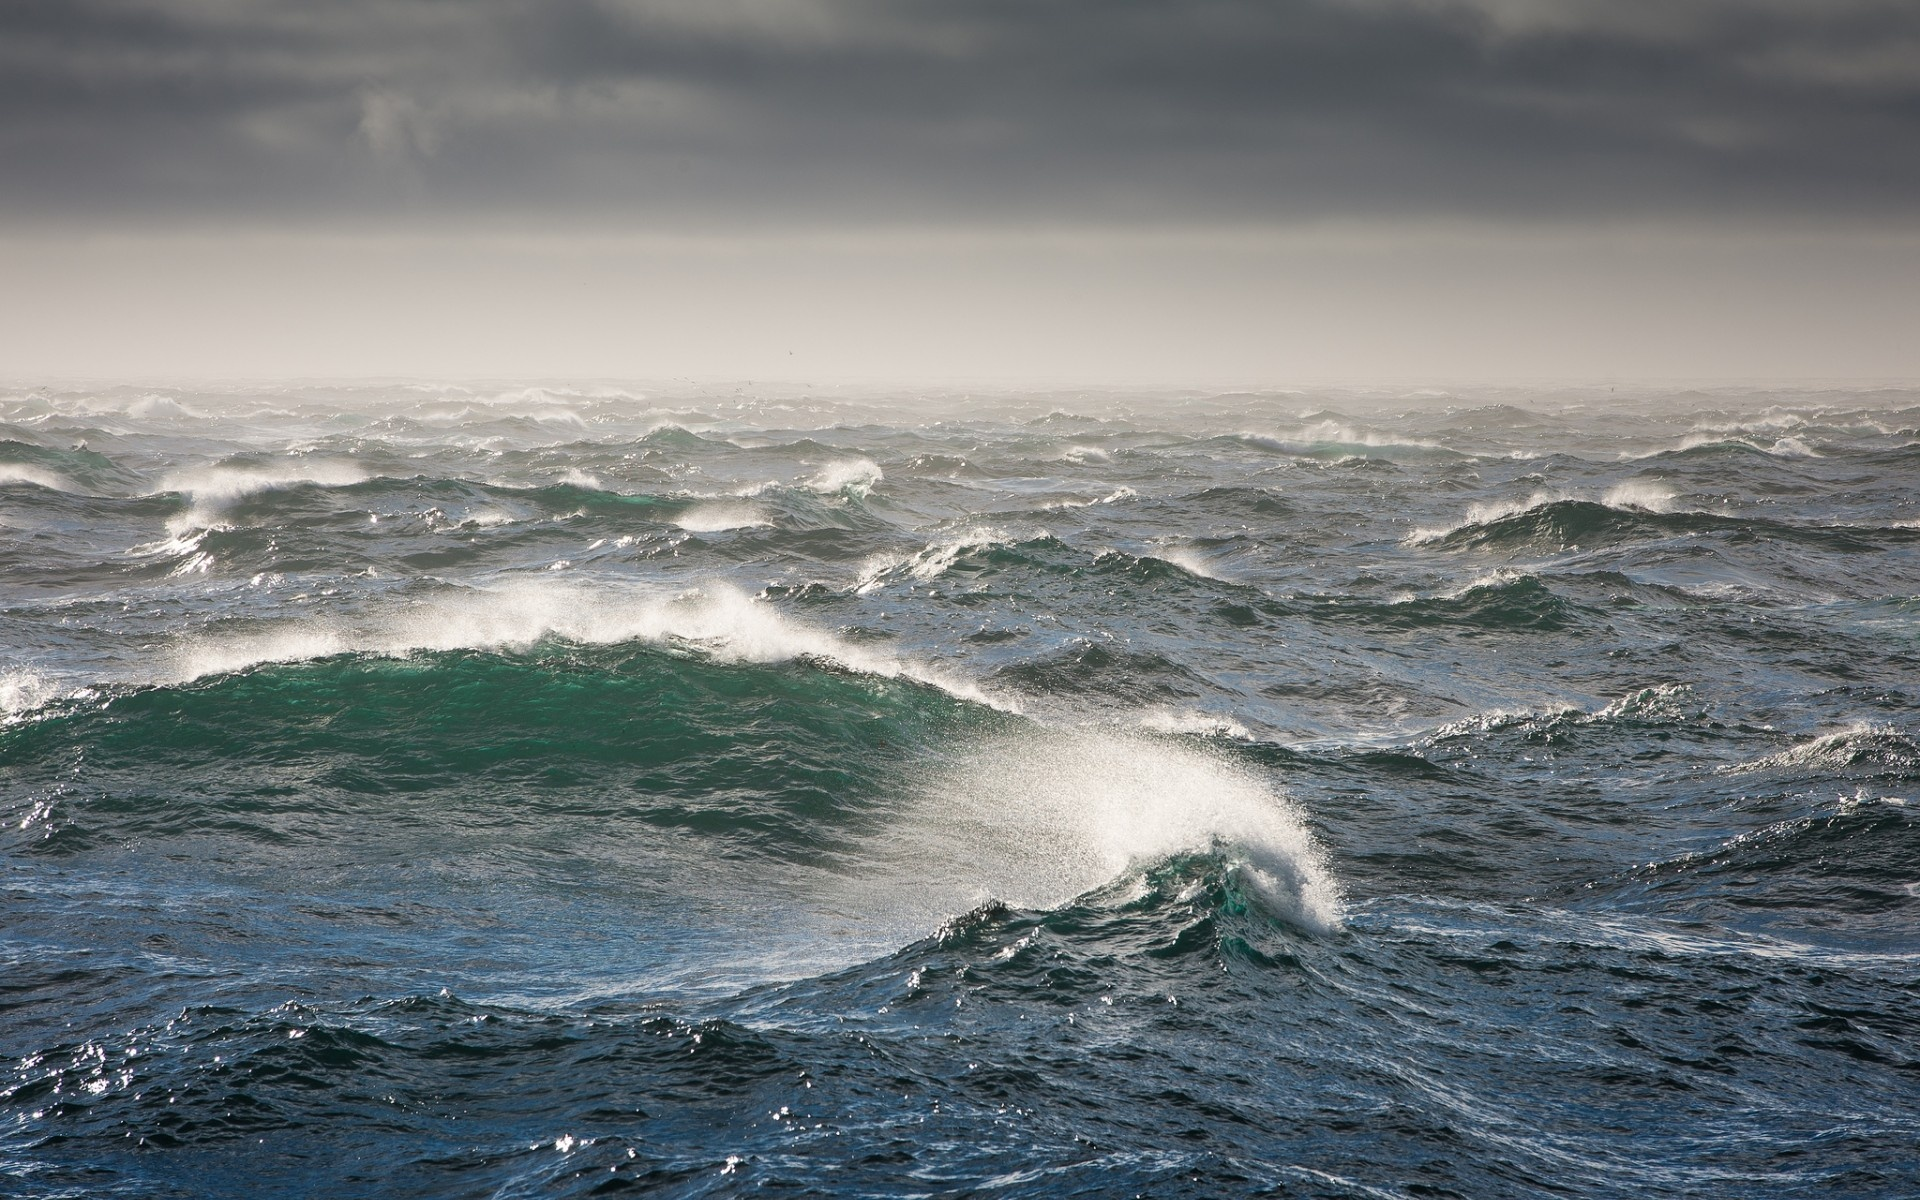 Wallpaper Bering Sea, Sea, waves, storm desktop wallpaper » Nature ...